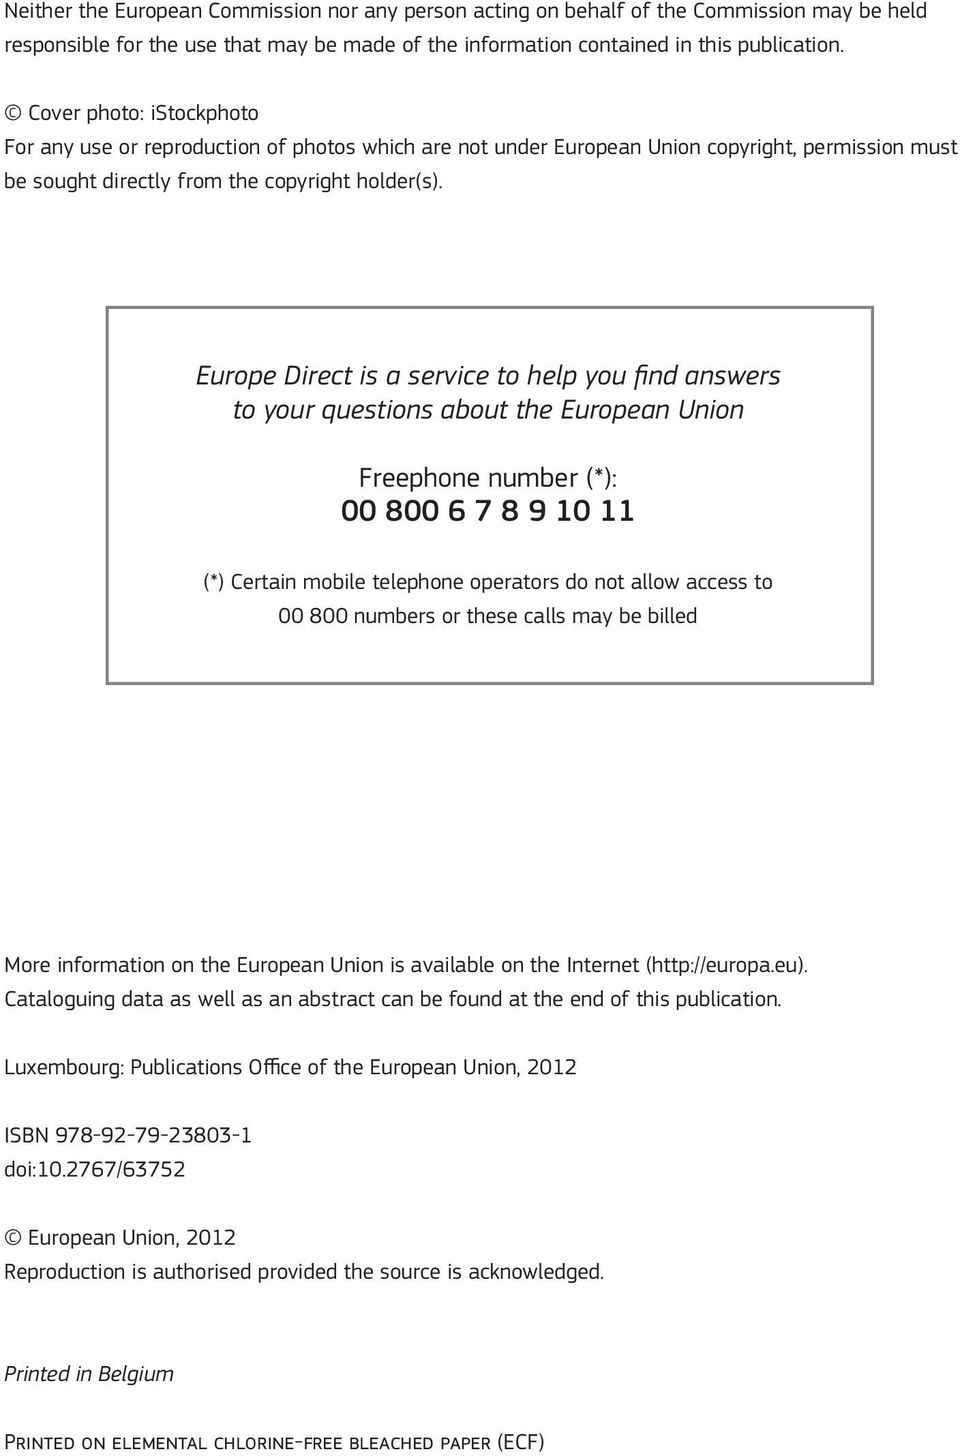 Europe Direct is a service to help you find answers to your questions about the European Union Freephone number (*): 00 800 6 7 8 9 10 11 (*) Certain mobile telephone operators do not allow access to